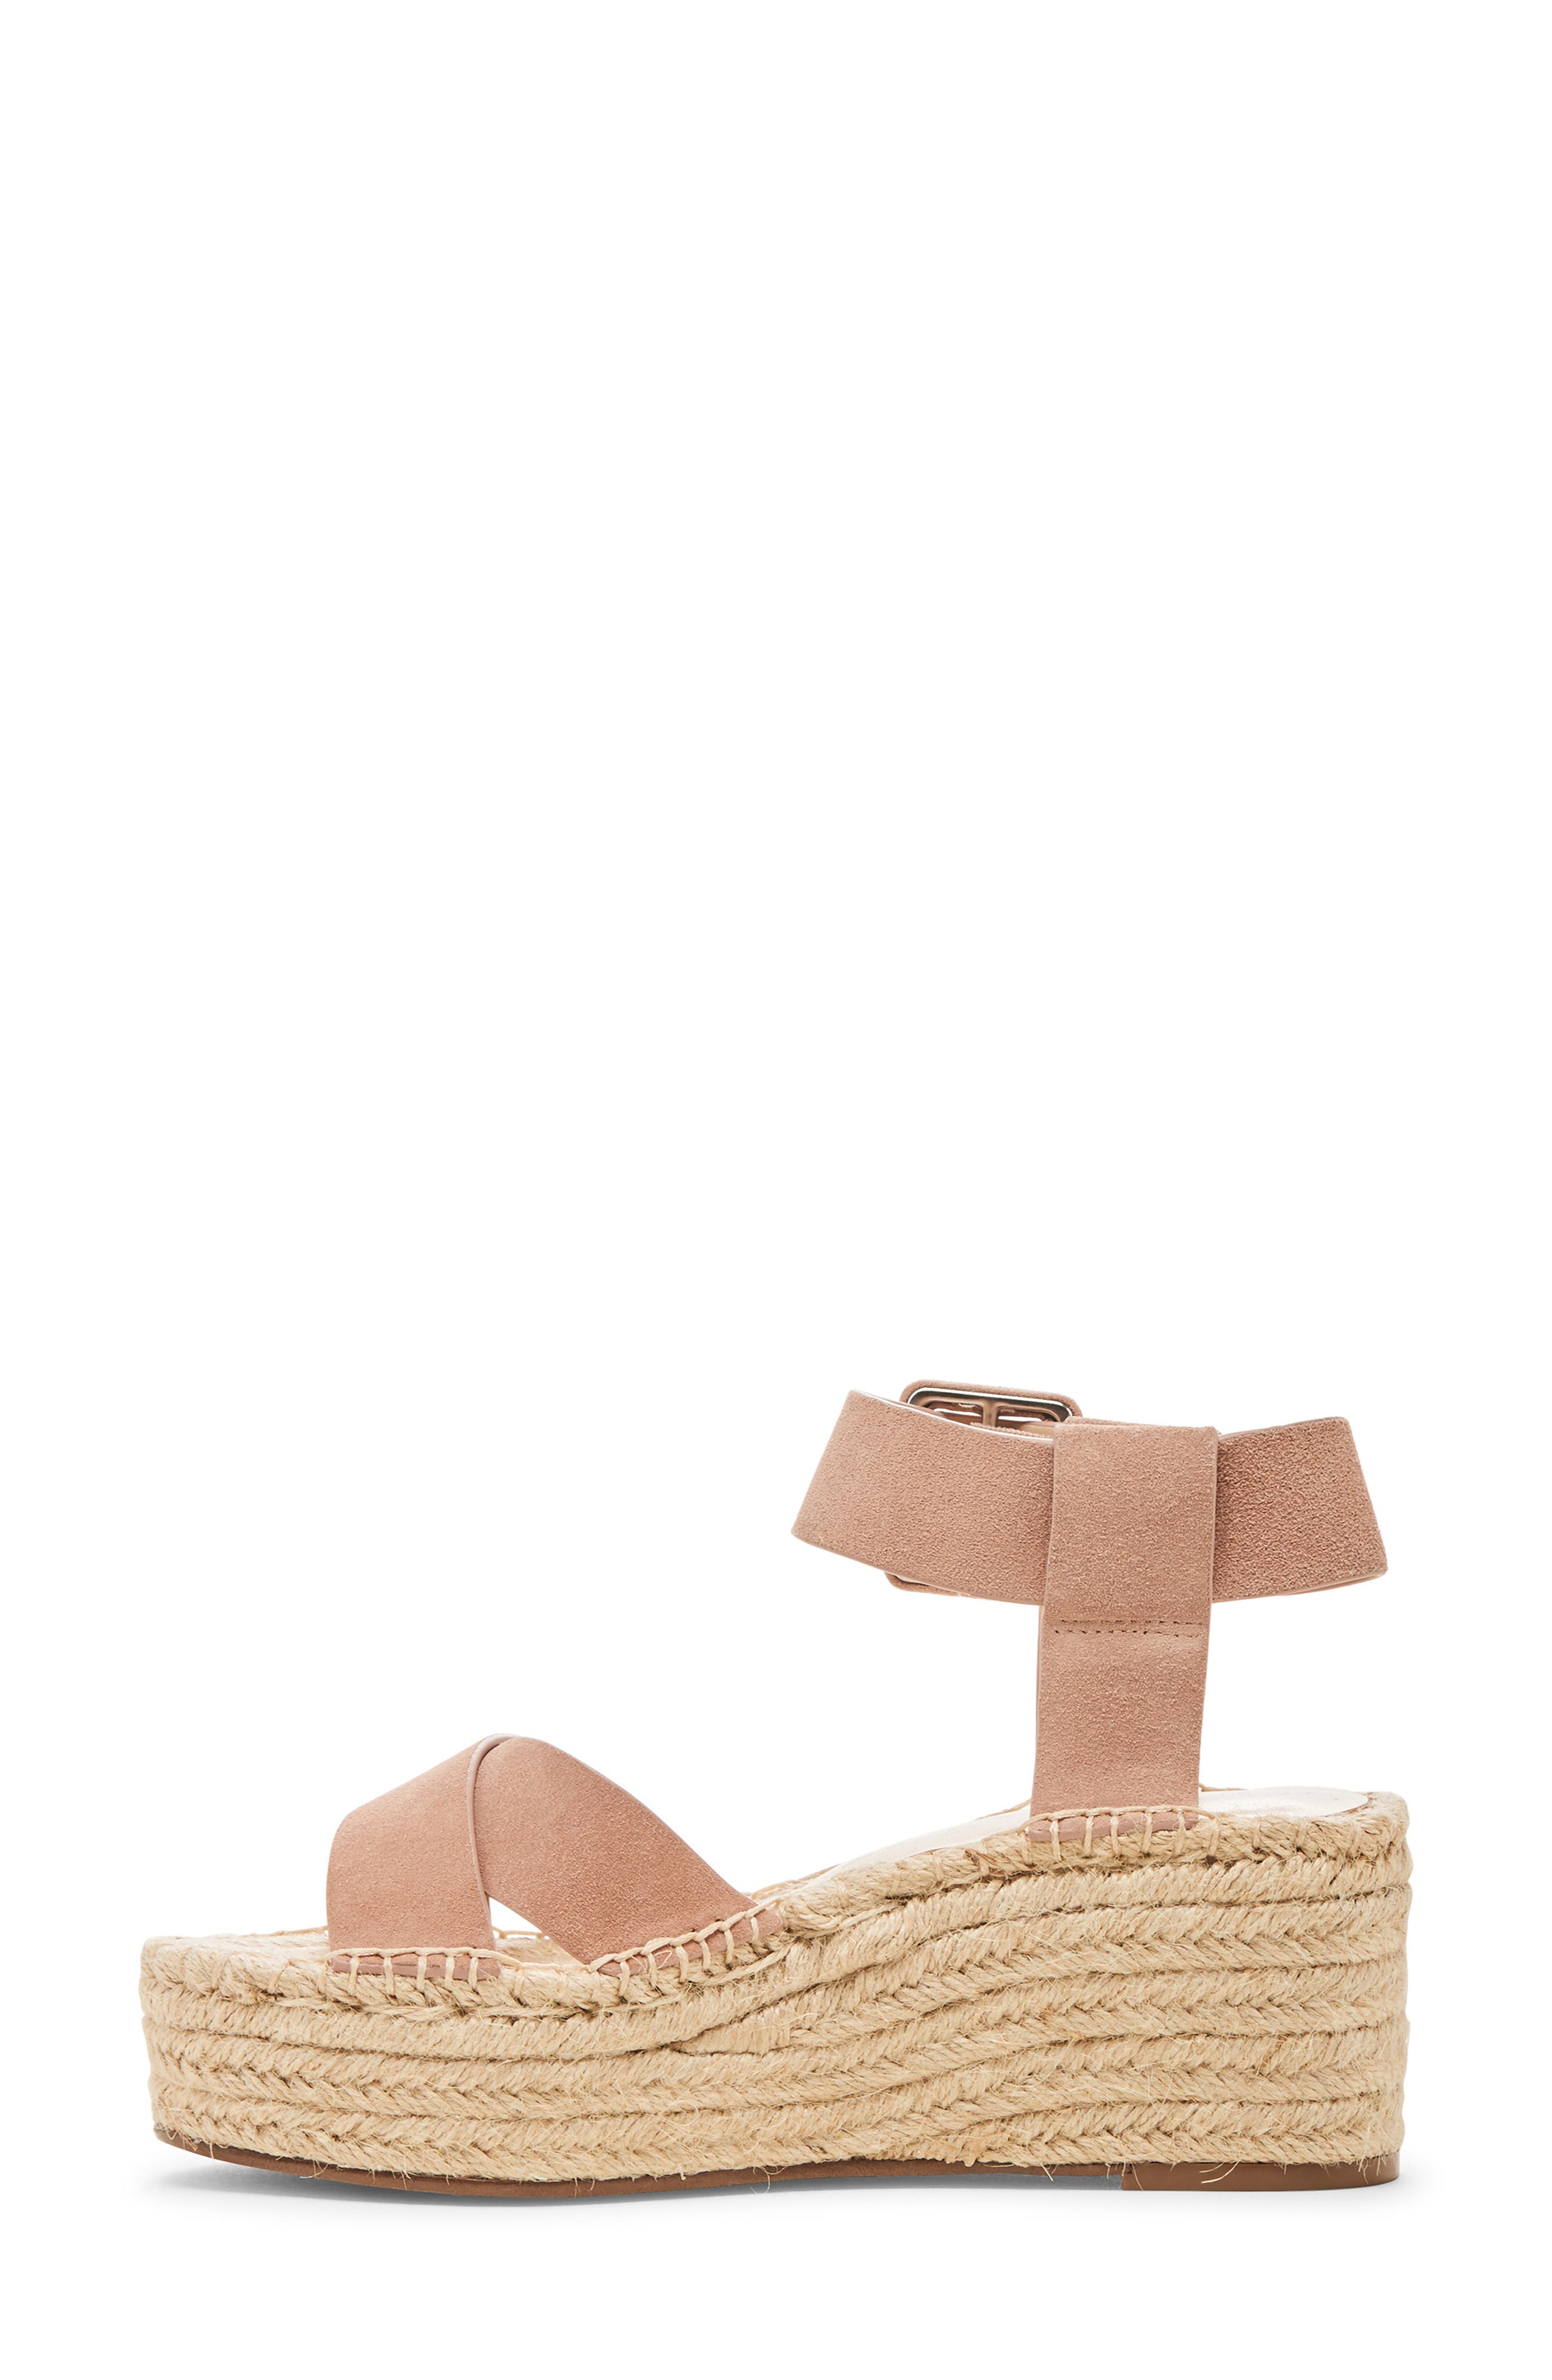 SOLE SOCIETY, Audrina Platform Espadrille Sandal, Alternate thumbnail 9, color, DUSTY ROSE SUEDE